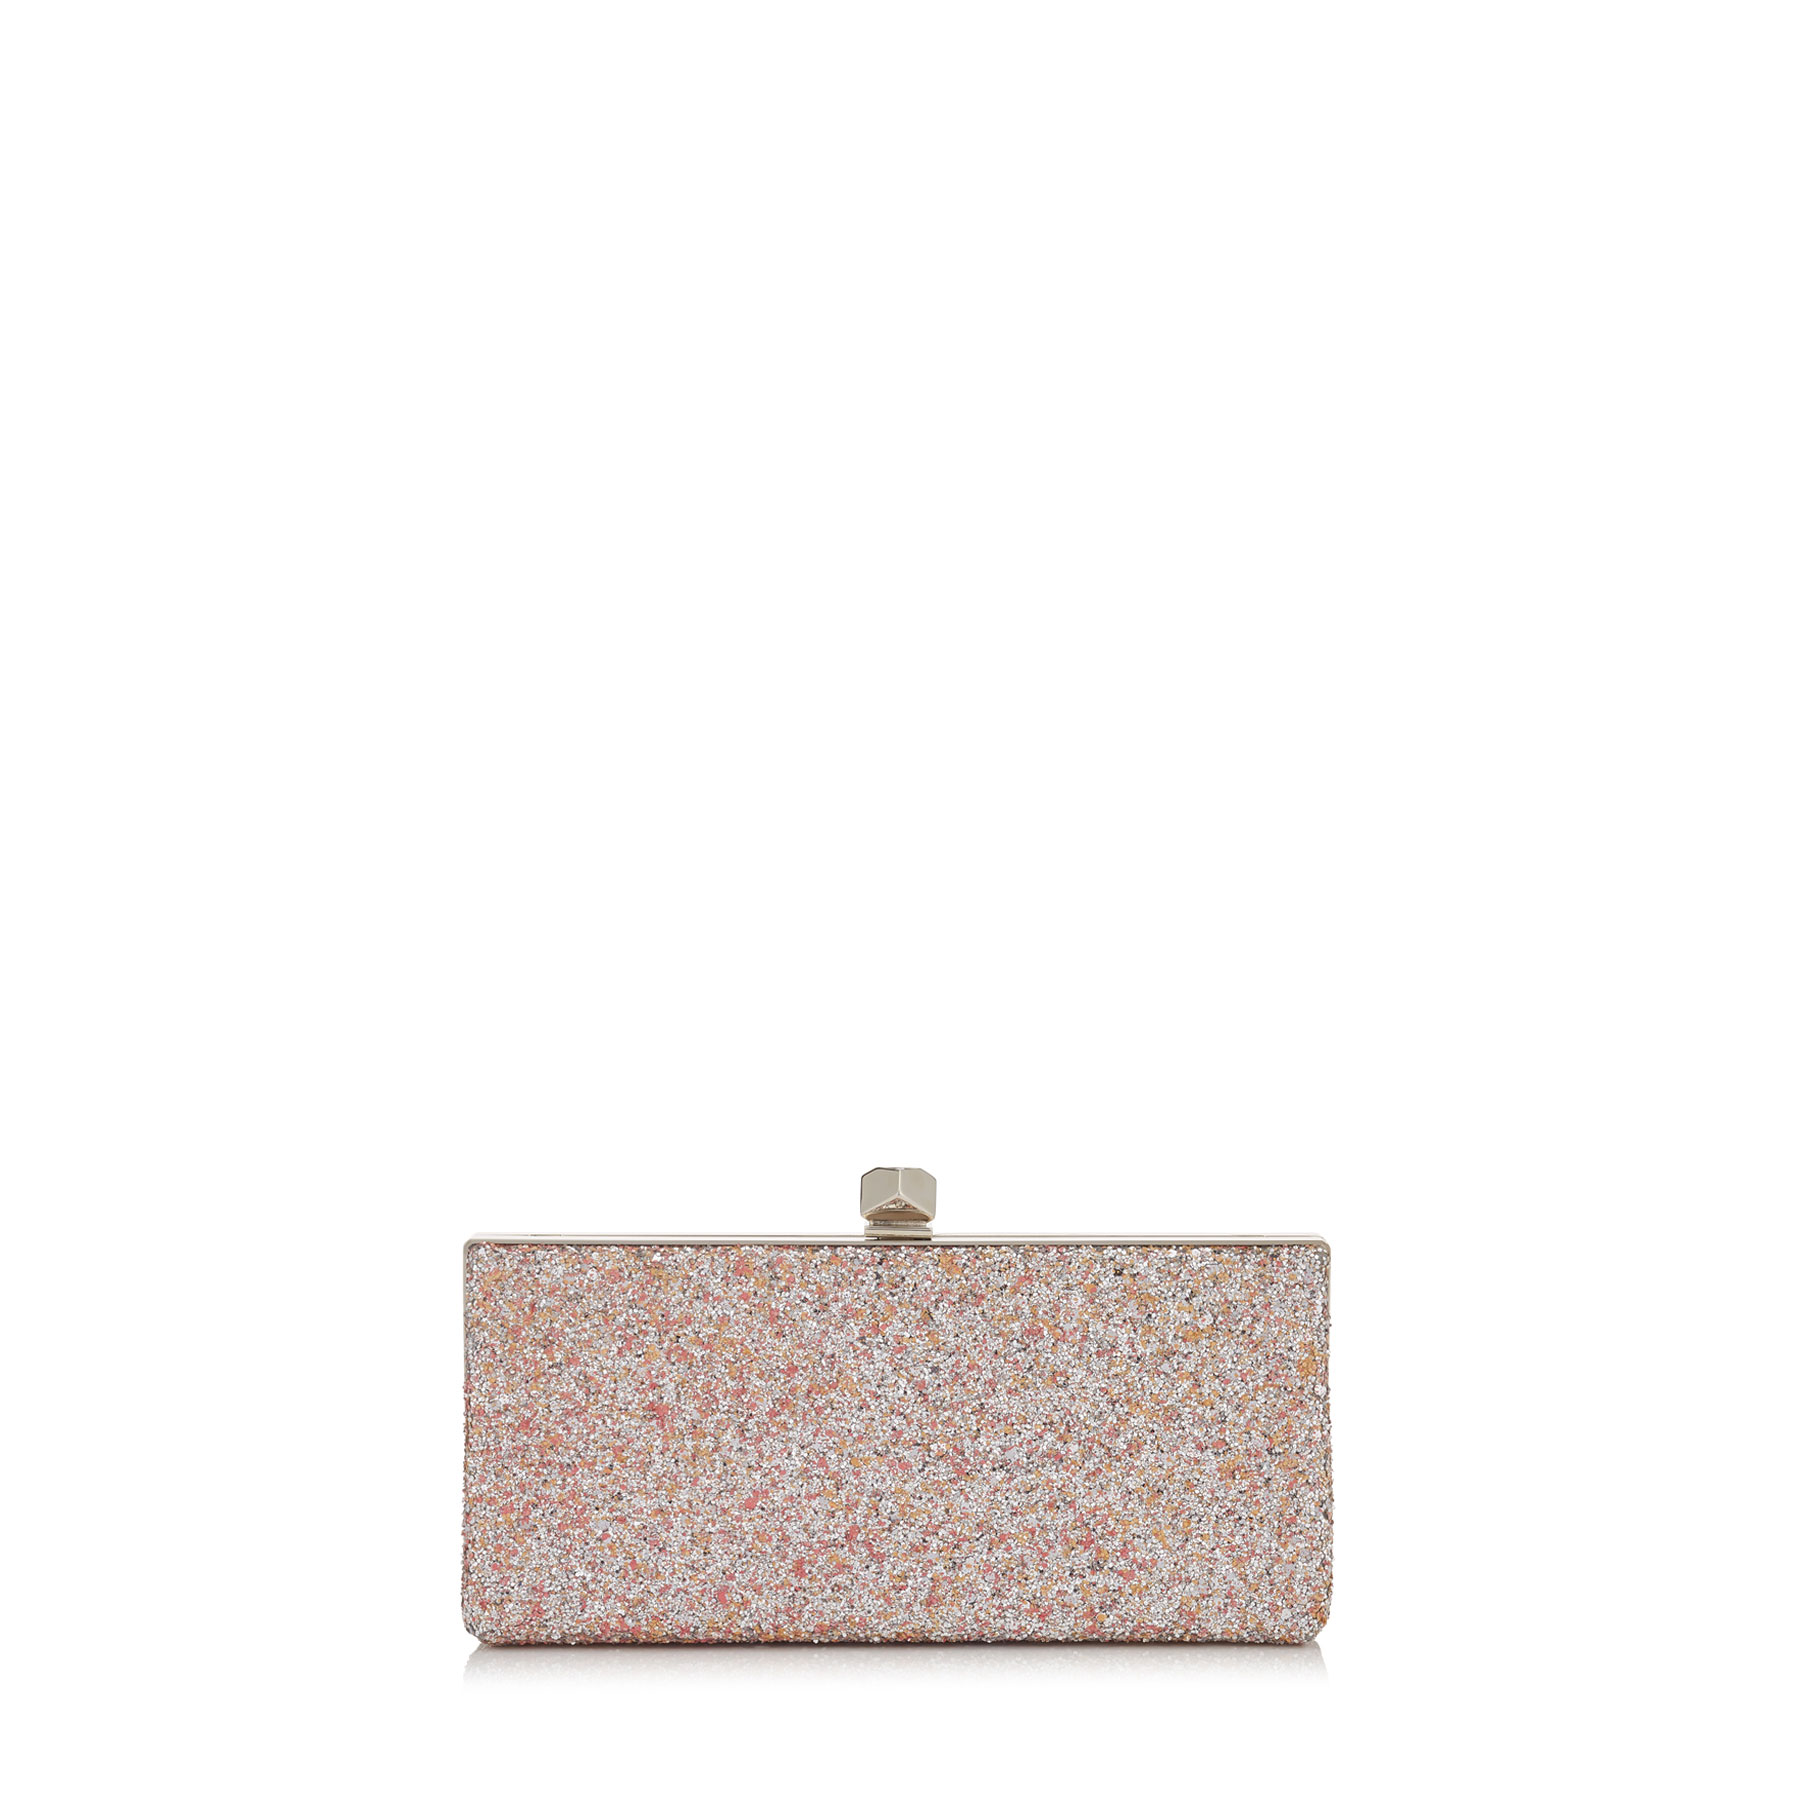 CELESTE/S Camellia Mix Speckled Glitter Clutch Bag with Cube Clasp